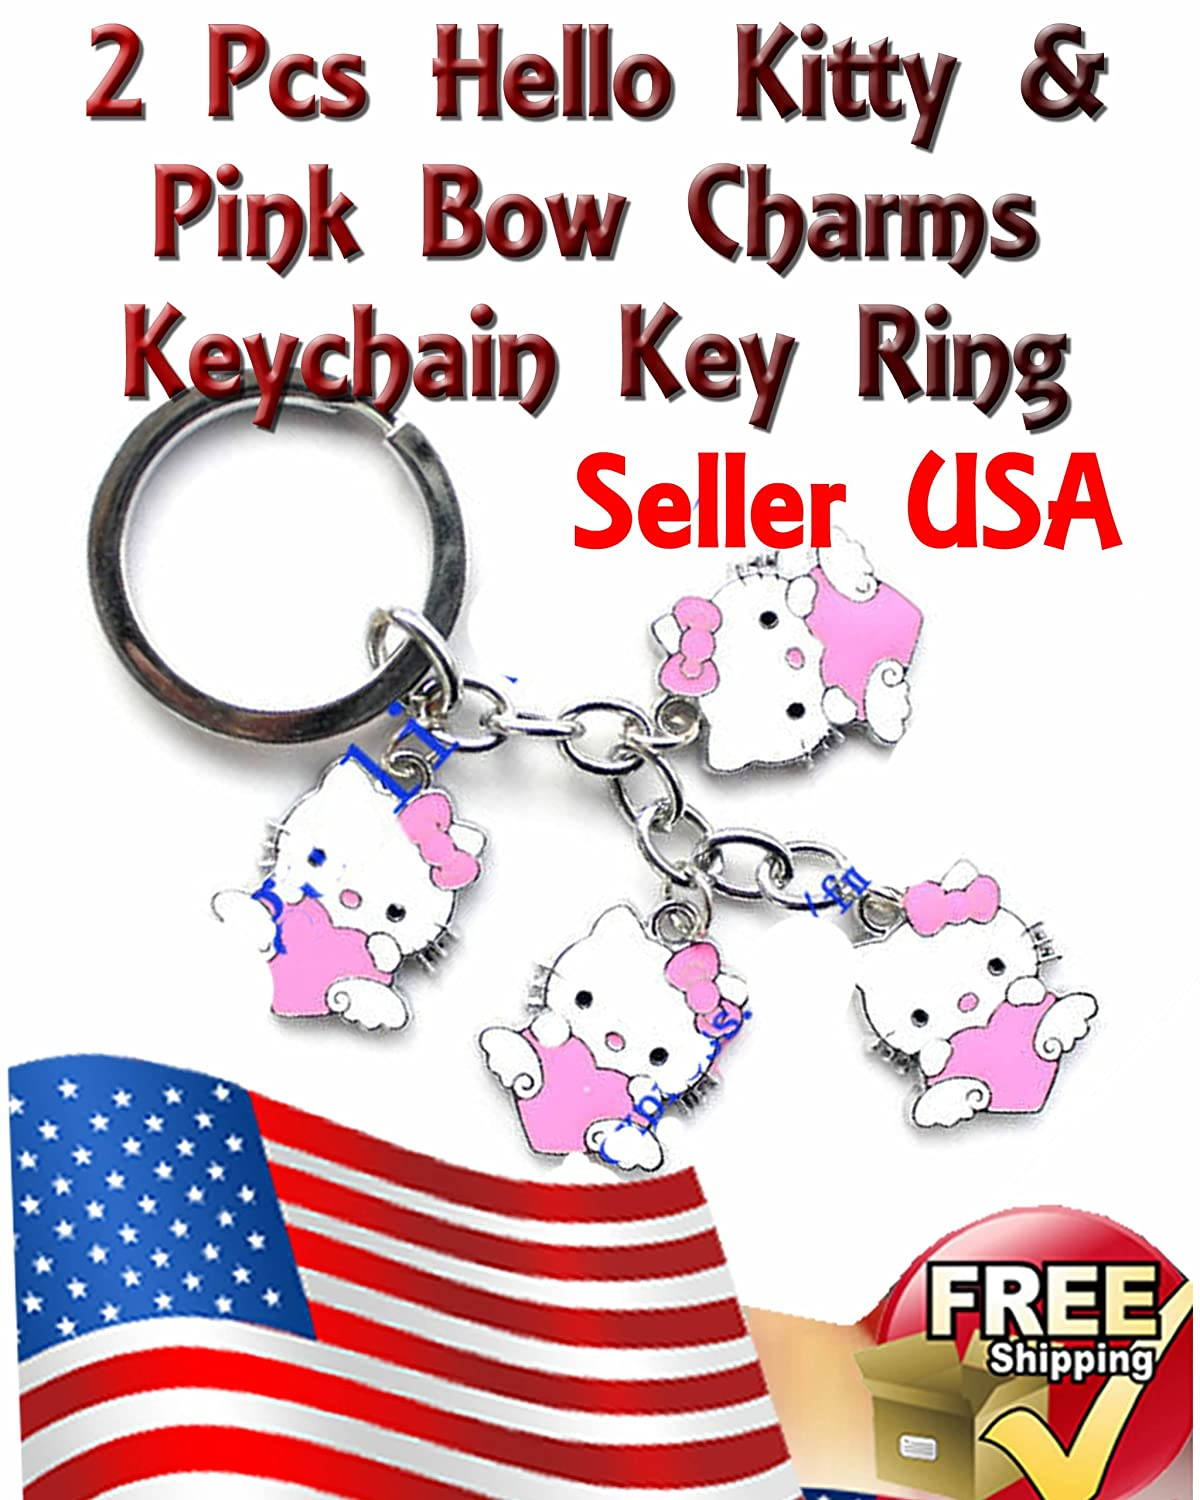 Amazon.com: Metal Single osito de Hello Kitty con llavero ...